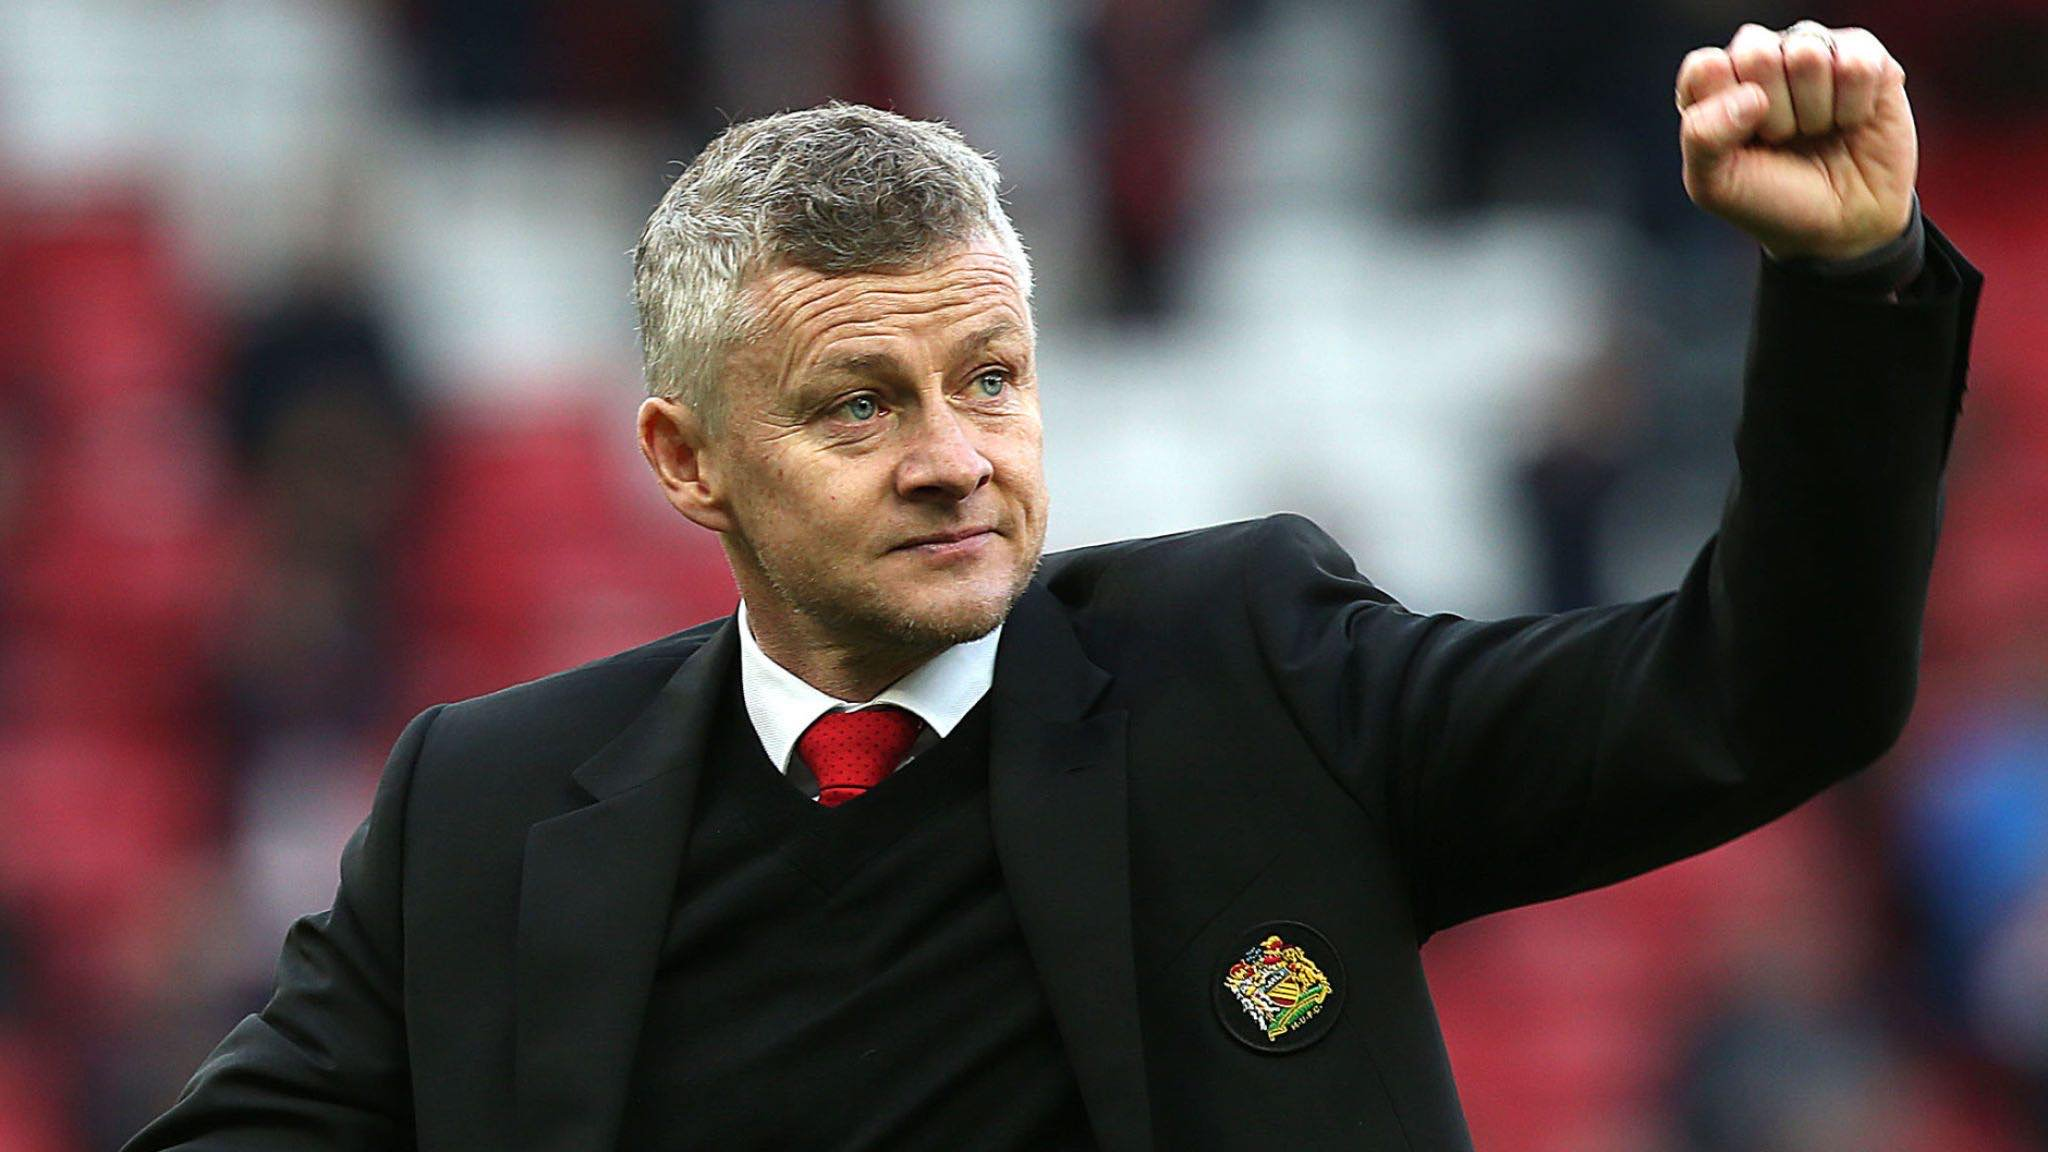 Is Solskjaer The Right Man For Manchester United?